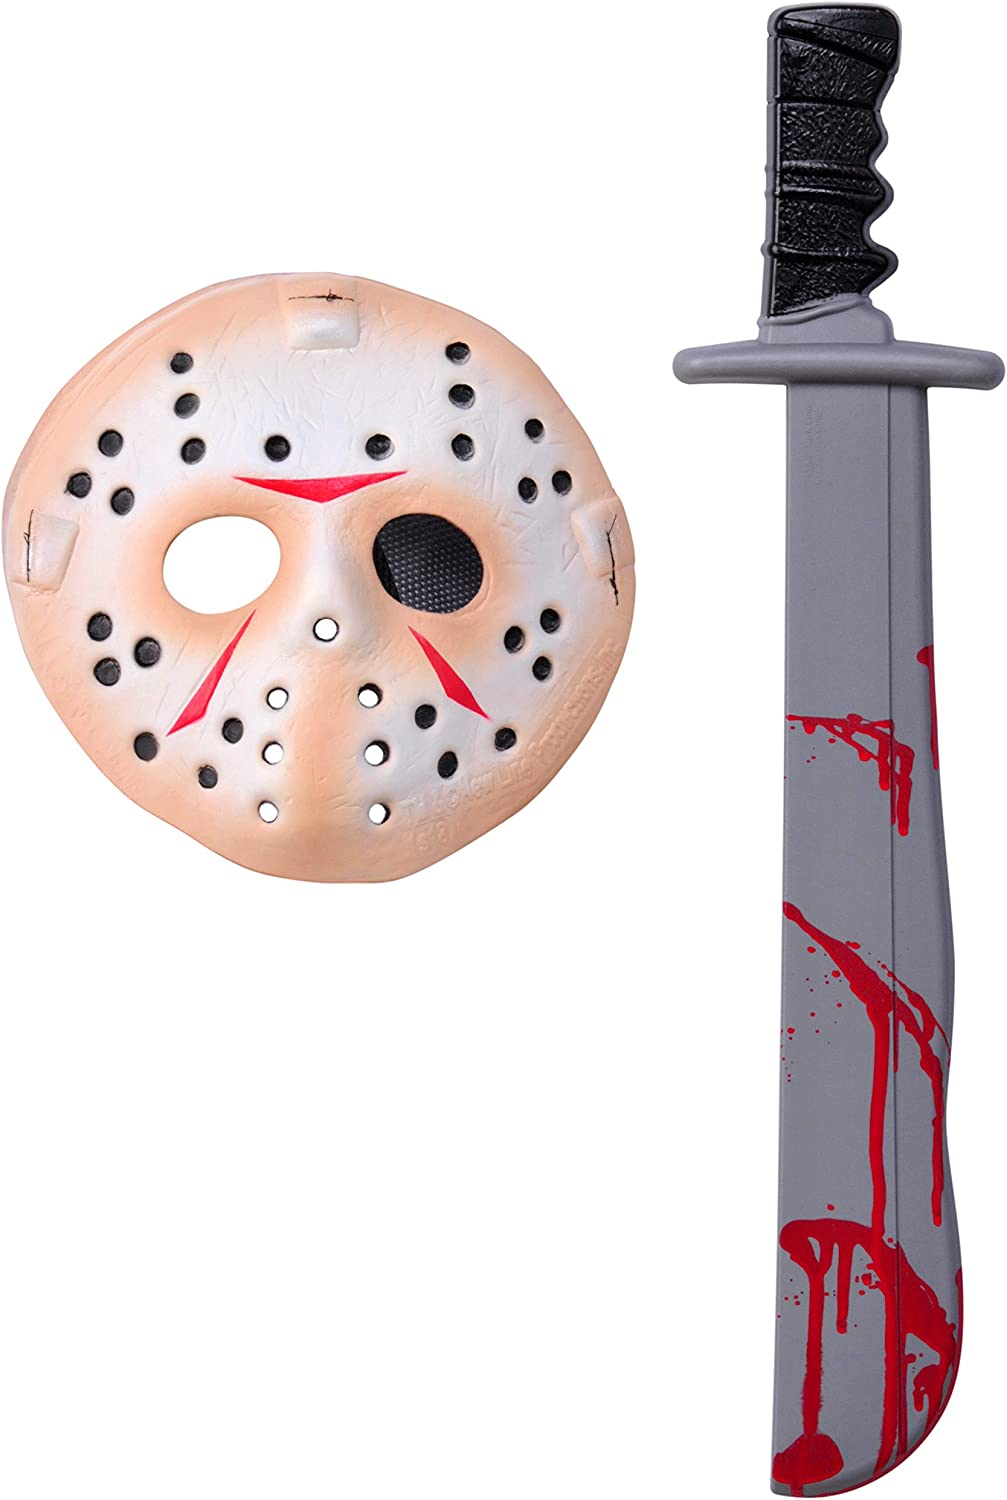 Friday The 13Th Jason Voorhees Mask Machete Ranking Sale special price TOP3 Set And